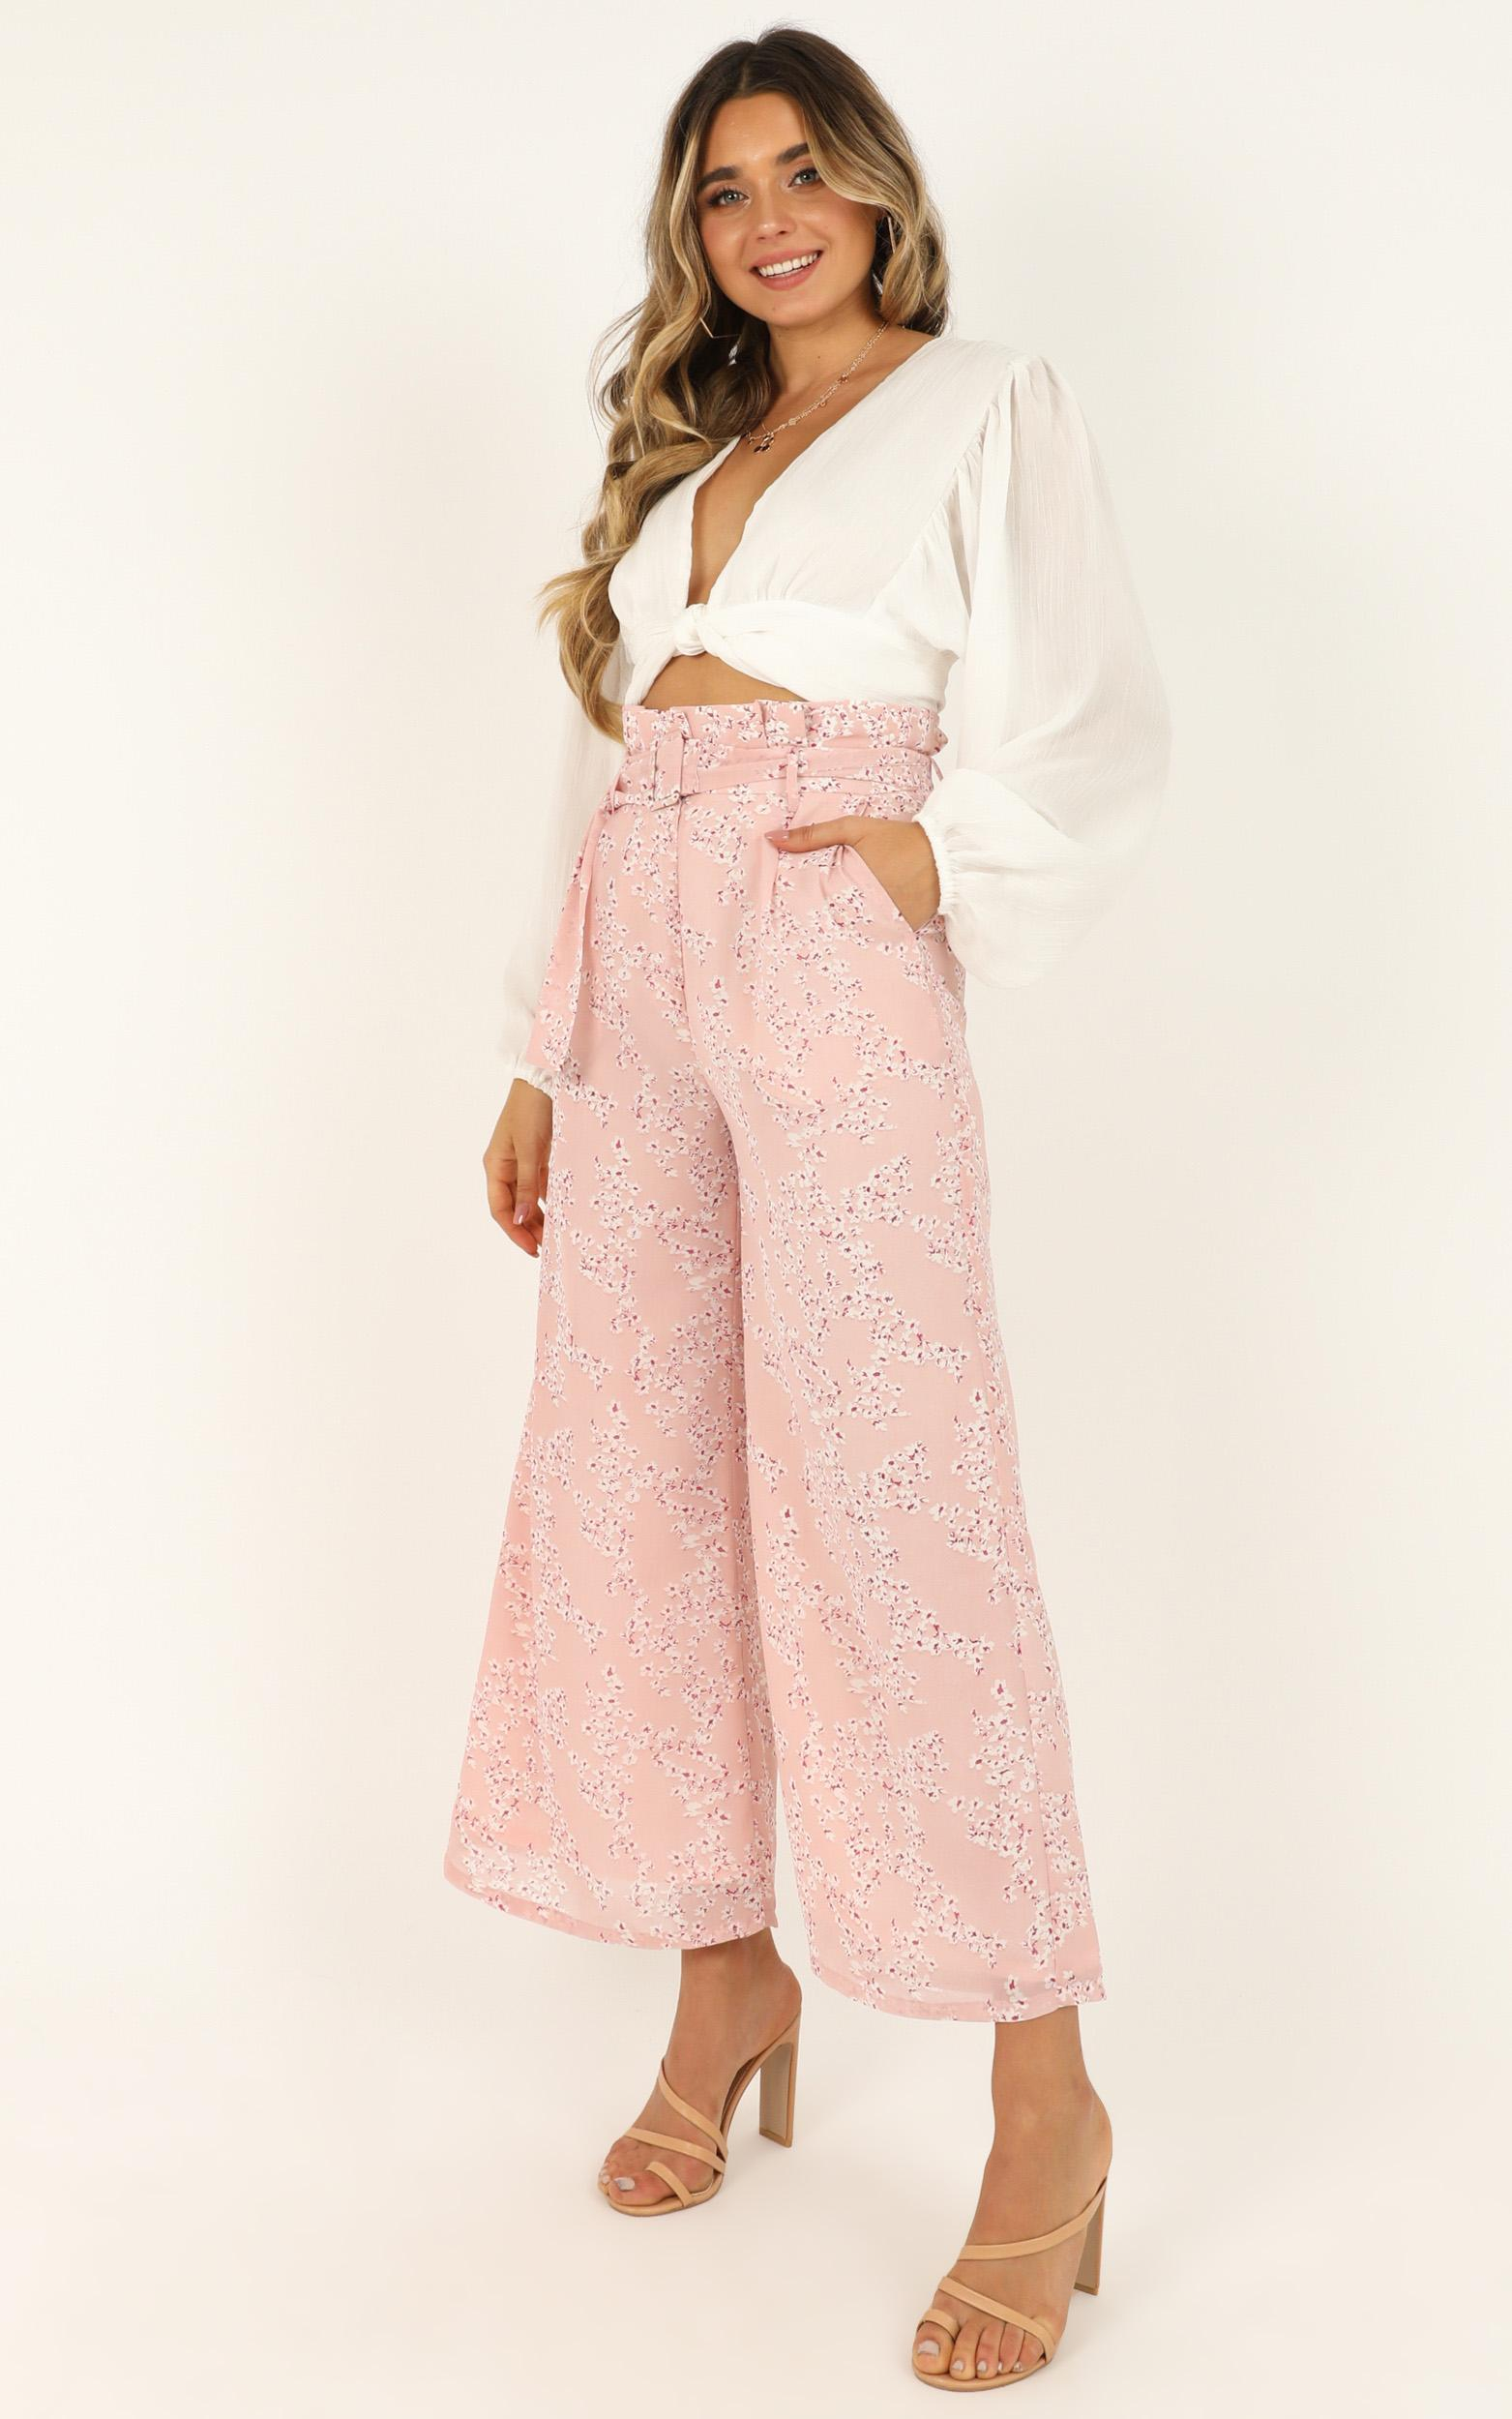 Hanging Flowers Pants In pink floral - 12 (L), Pink, hi-res image number null